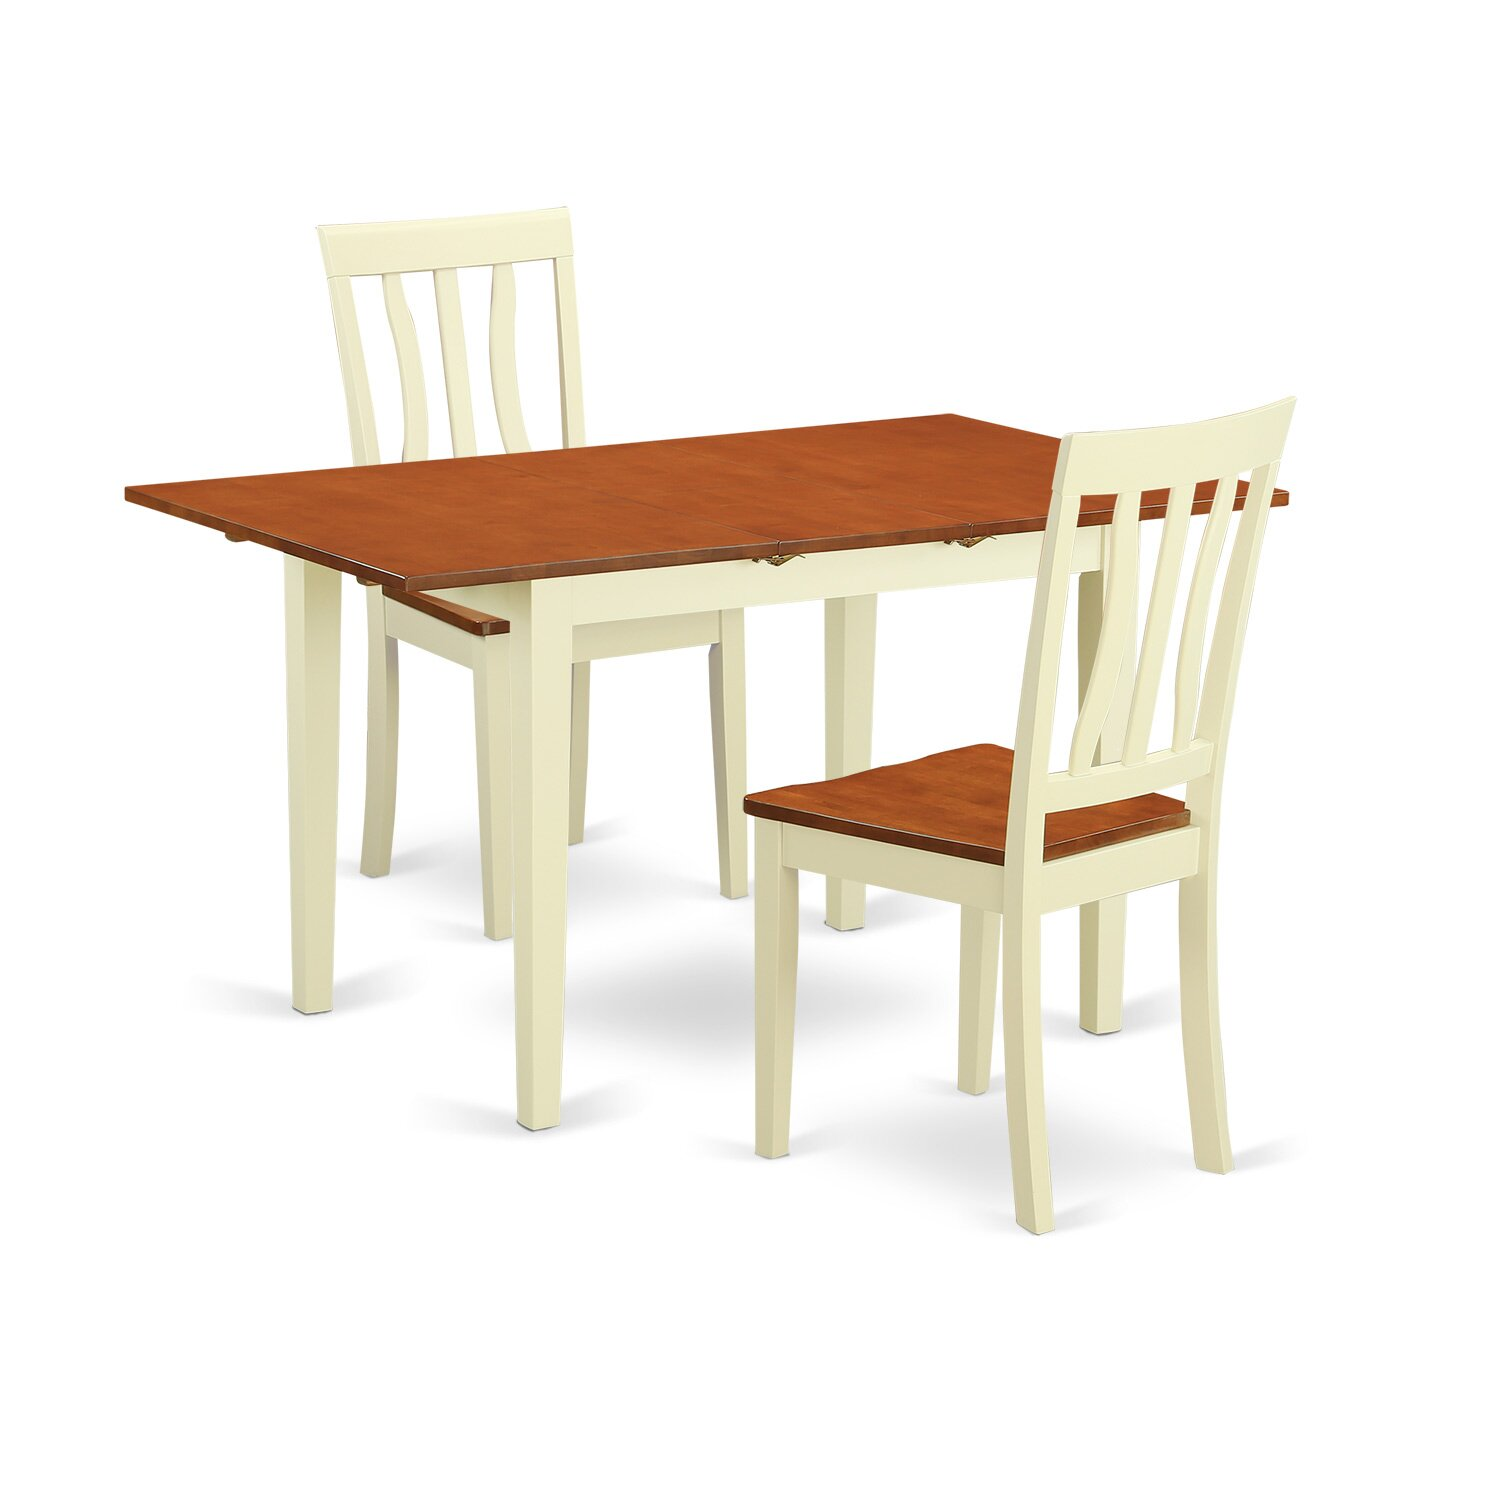 Wooden importers 3 piece dining set reviews wayfair for Dining room table for 2